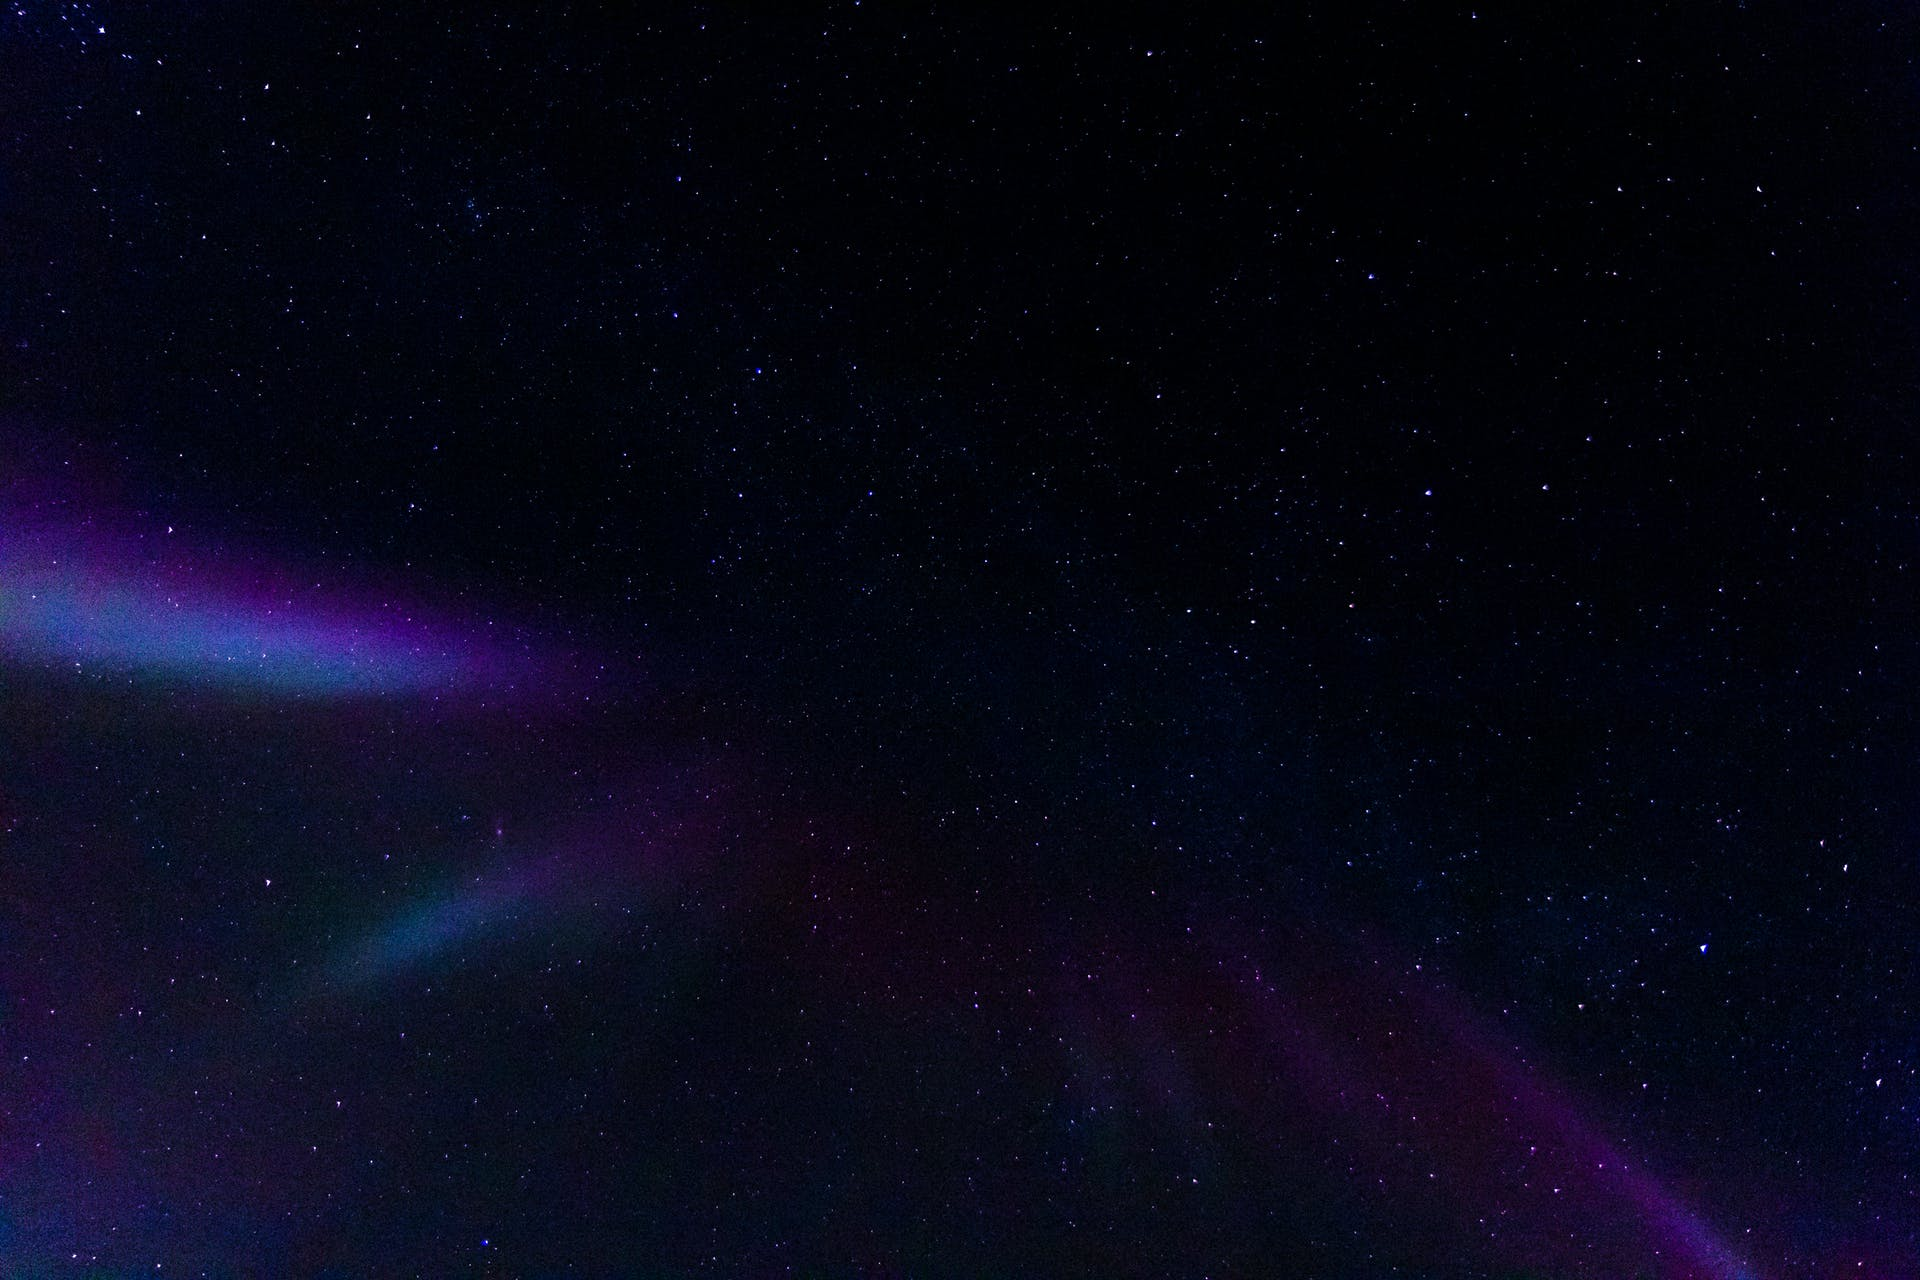 atmosphere astronomy space aurora borealis northern lights nightscape outdoorchallenge night stars night sky